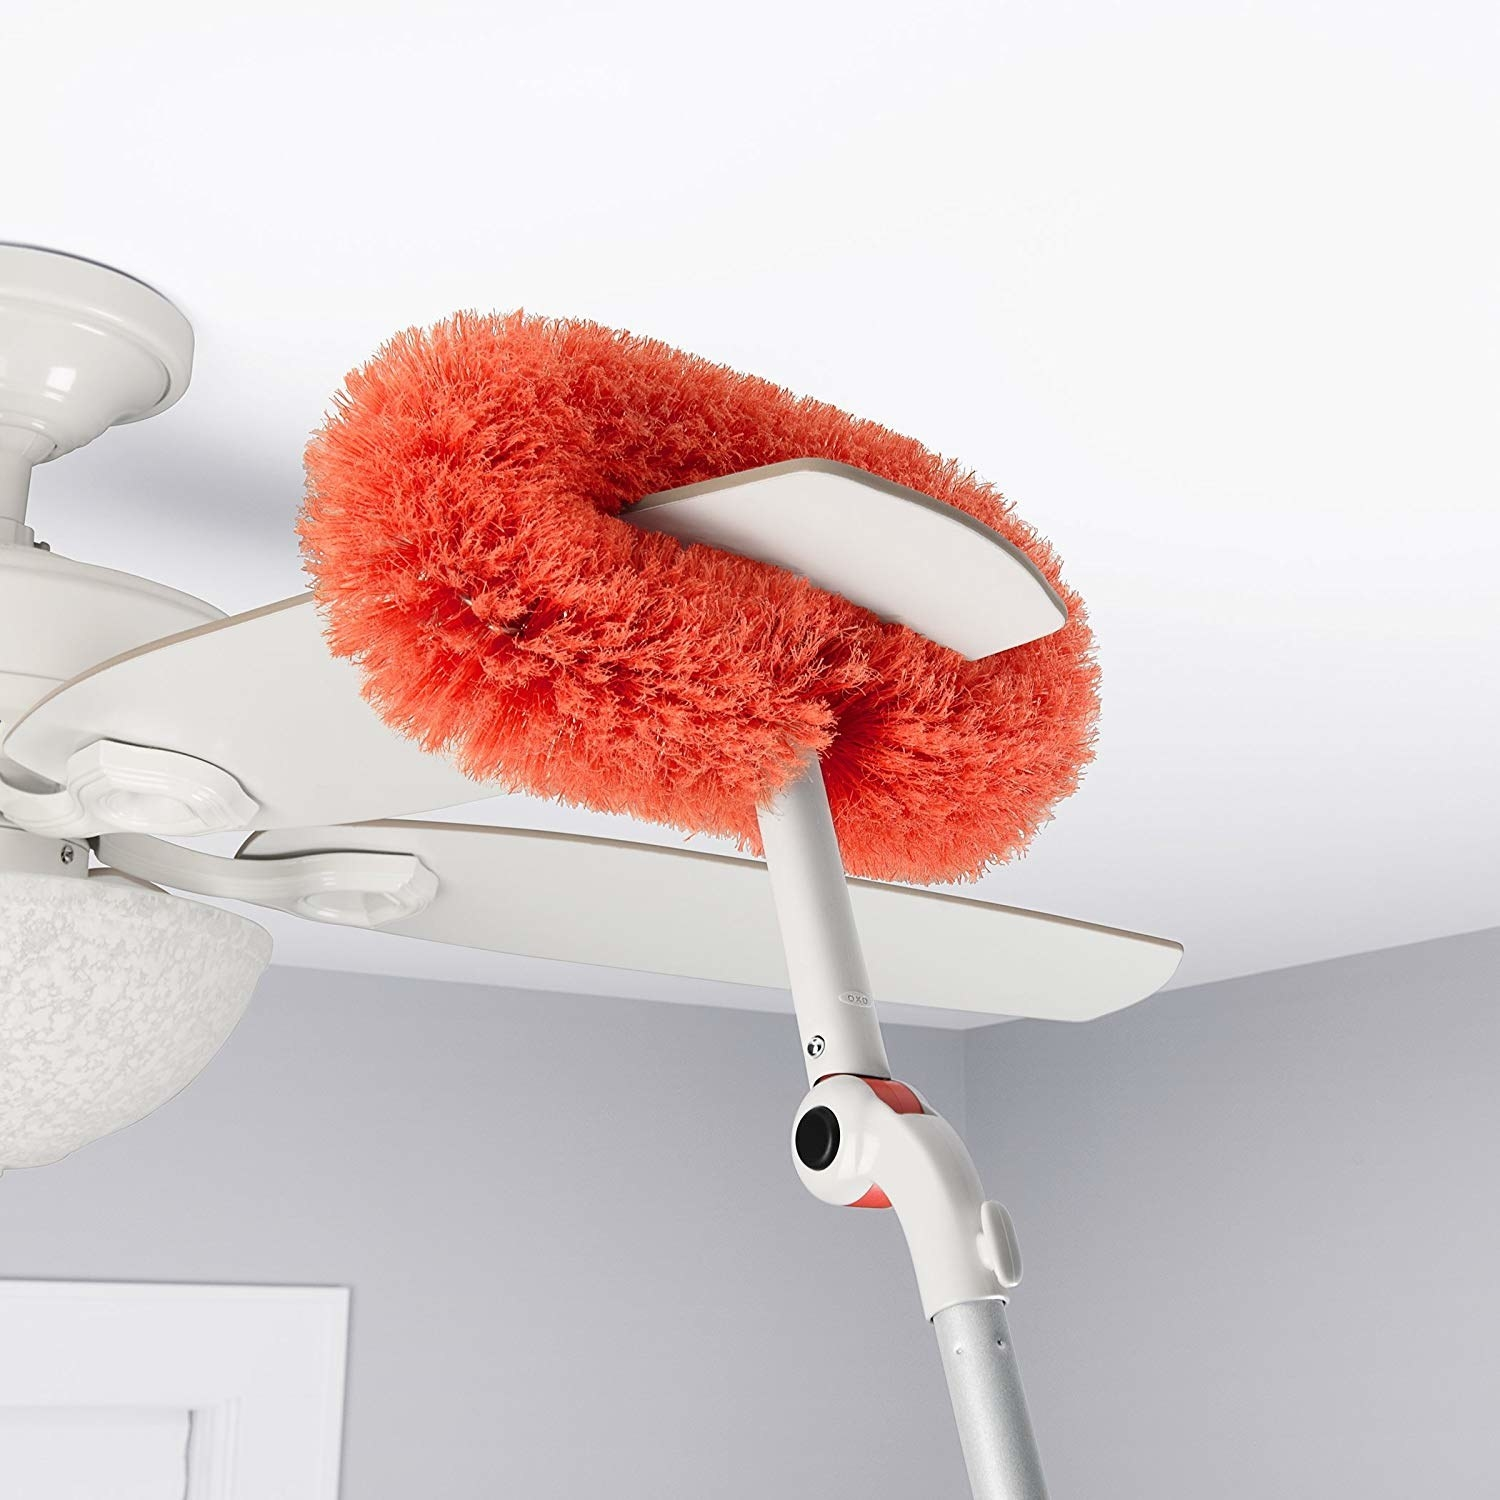 microfiber long reach duster cleaning a blade of a ceiling fan